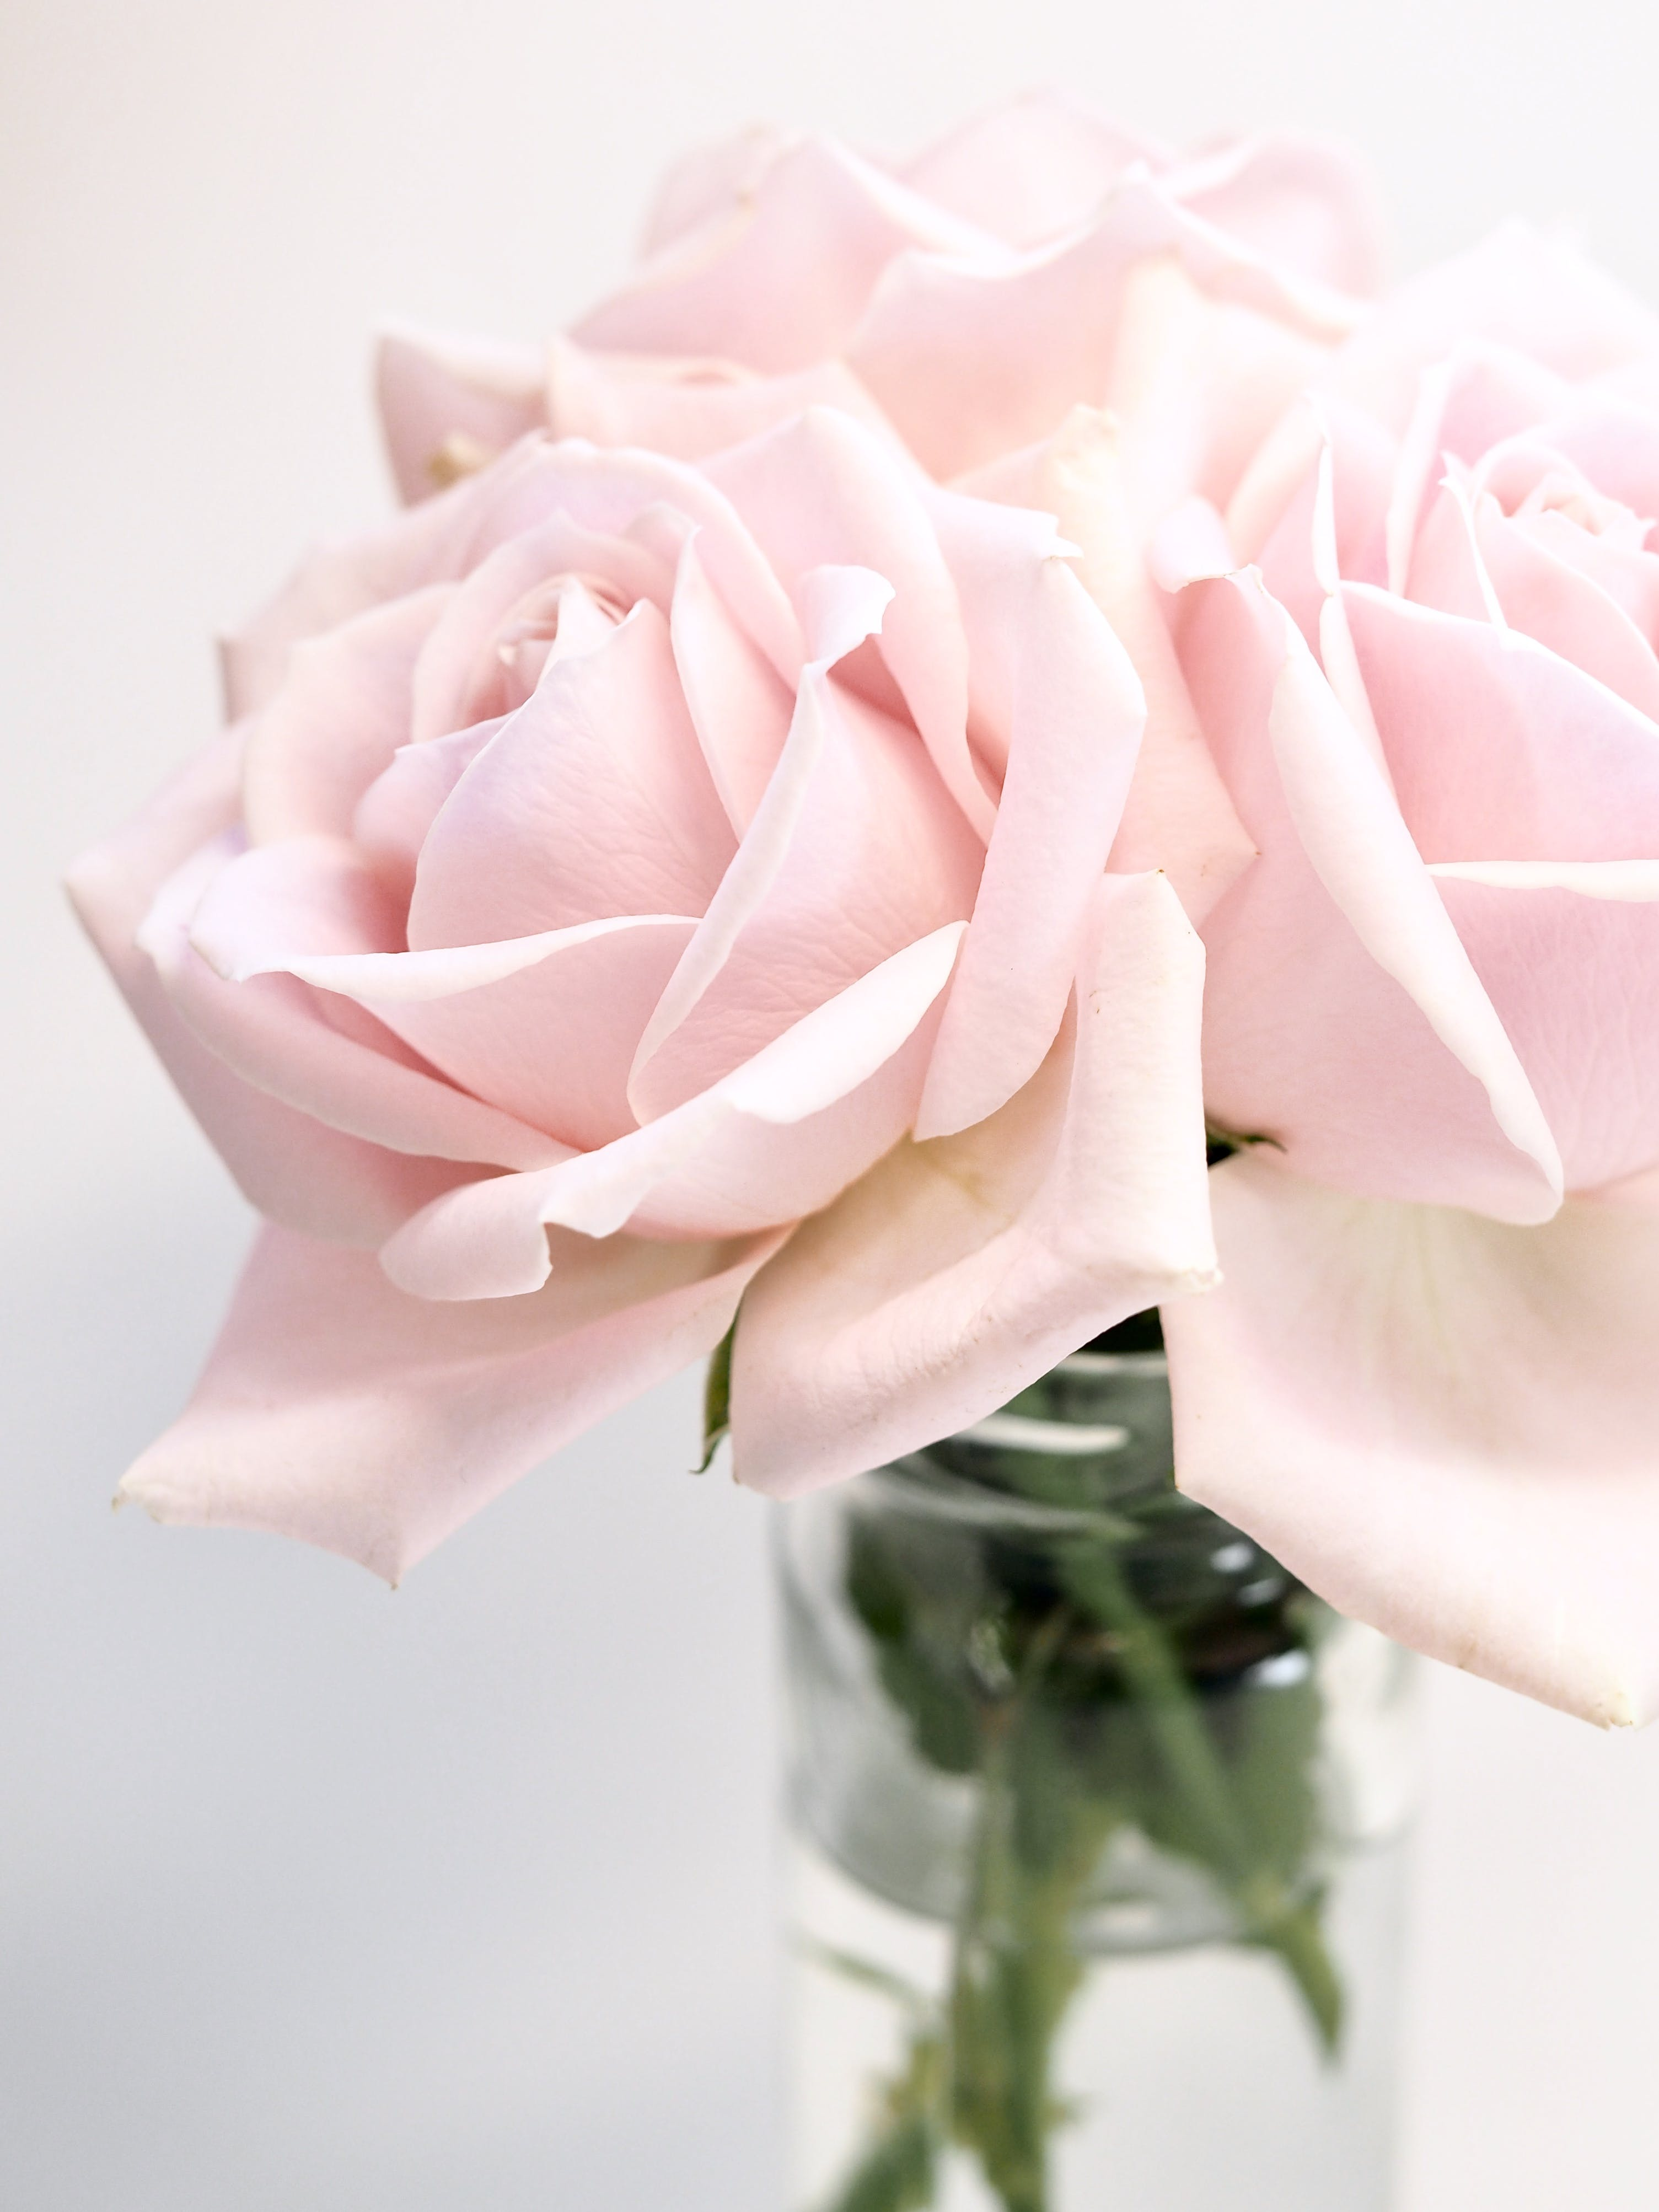 Close-up Photography of Roses